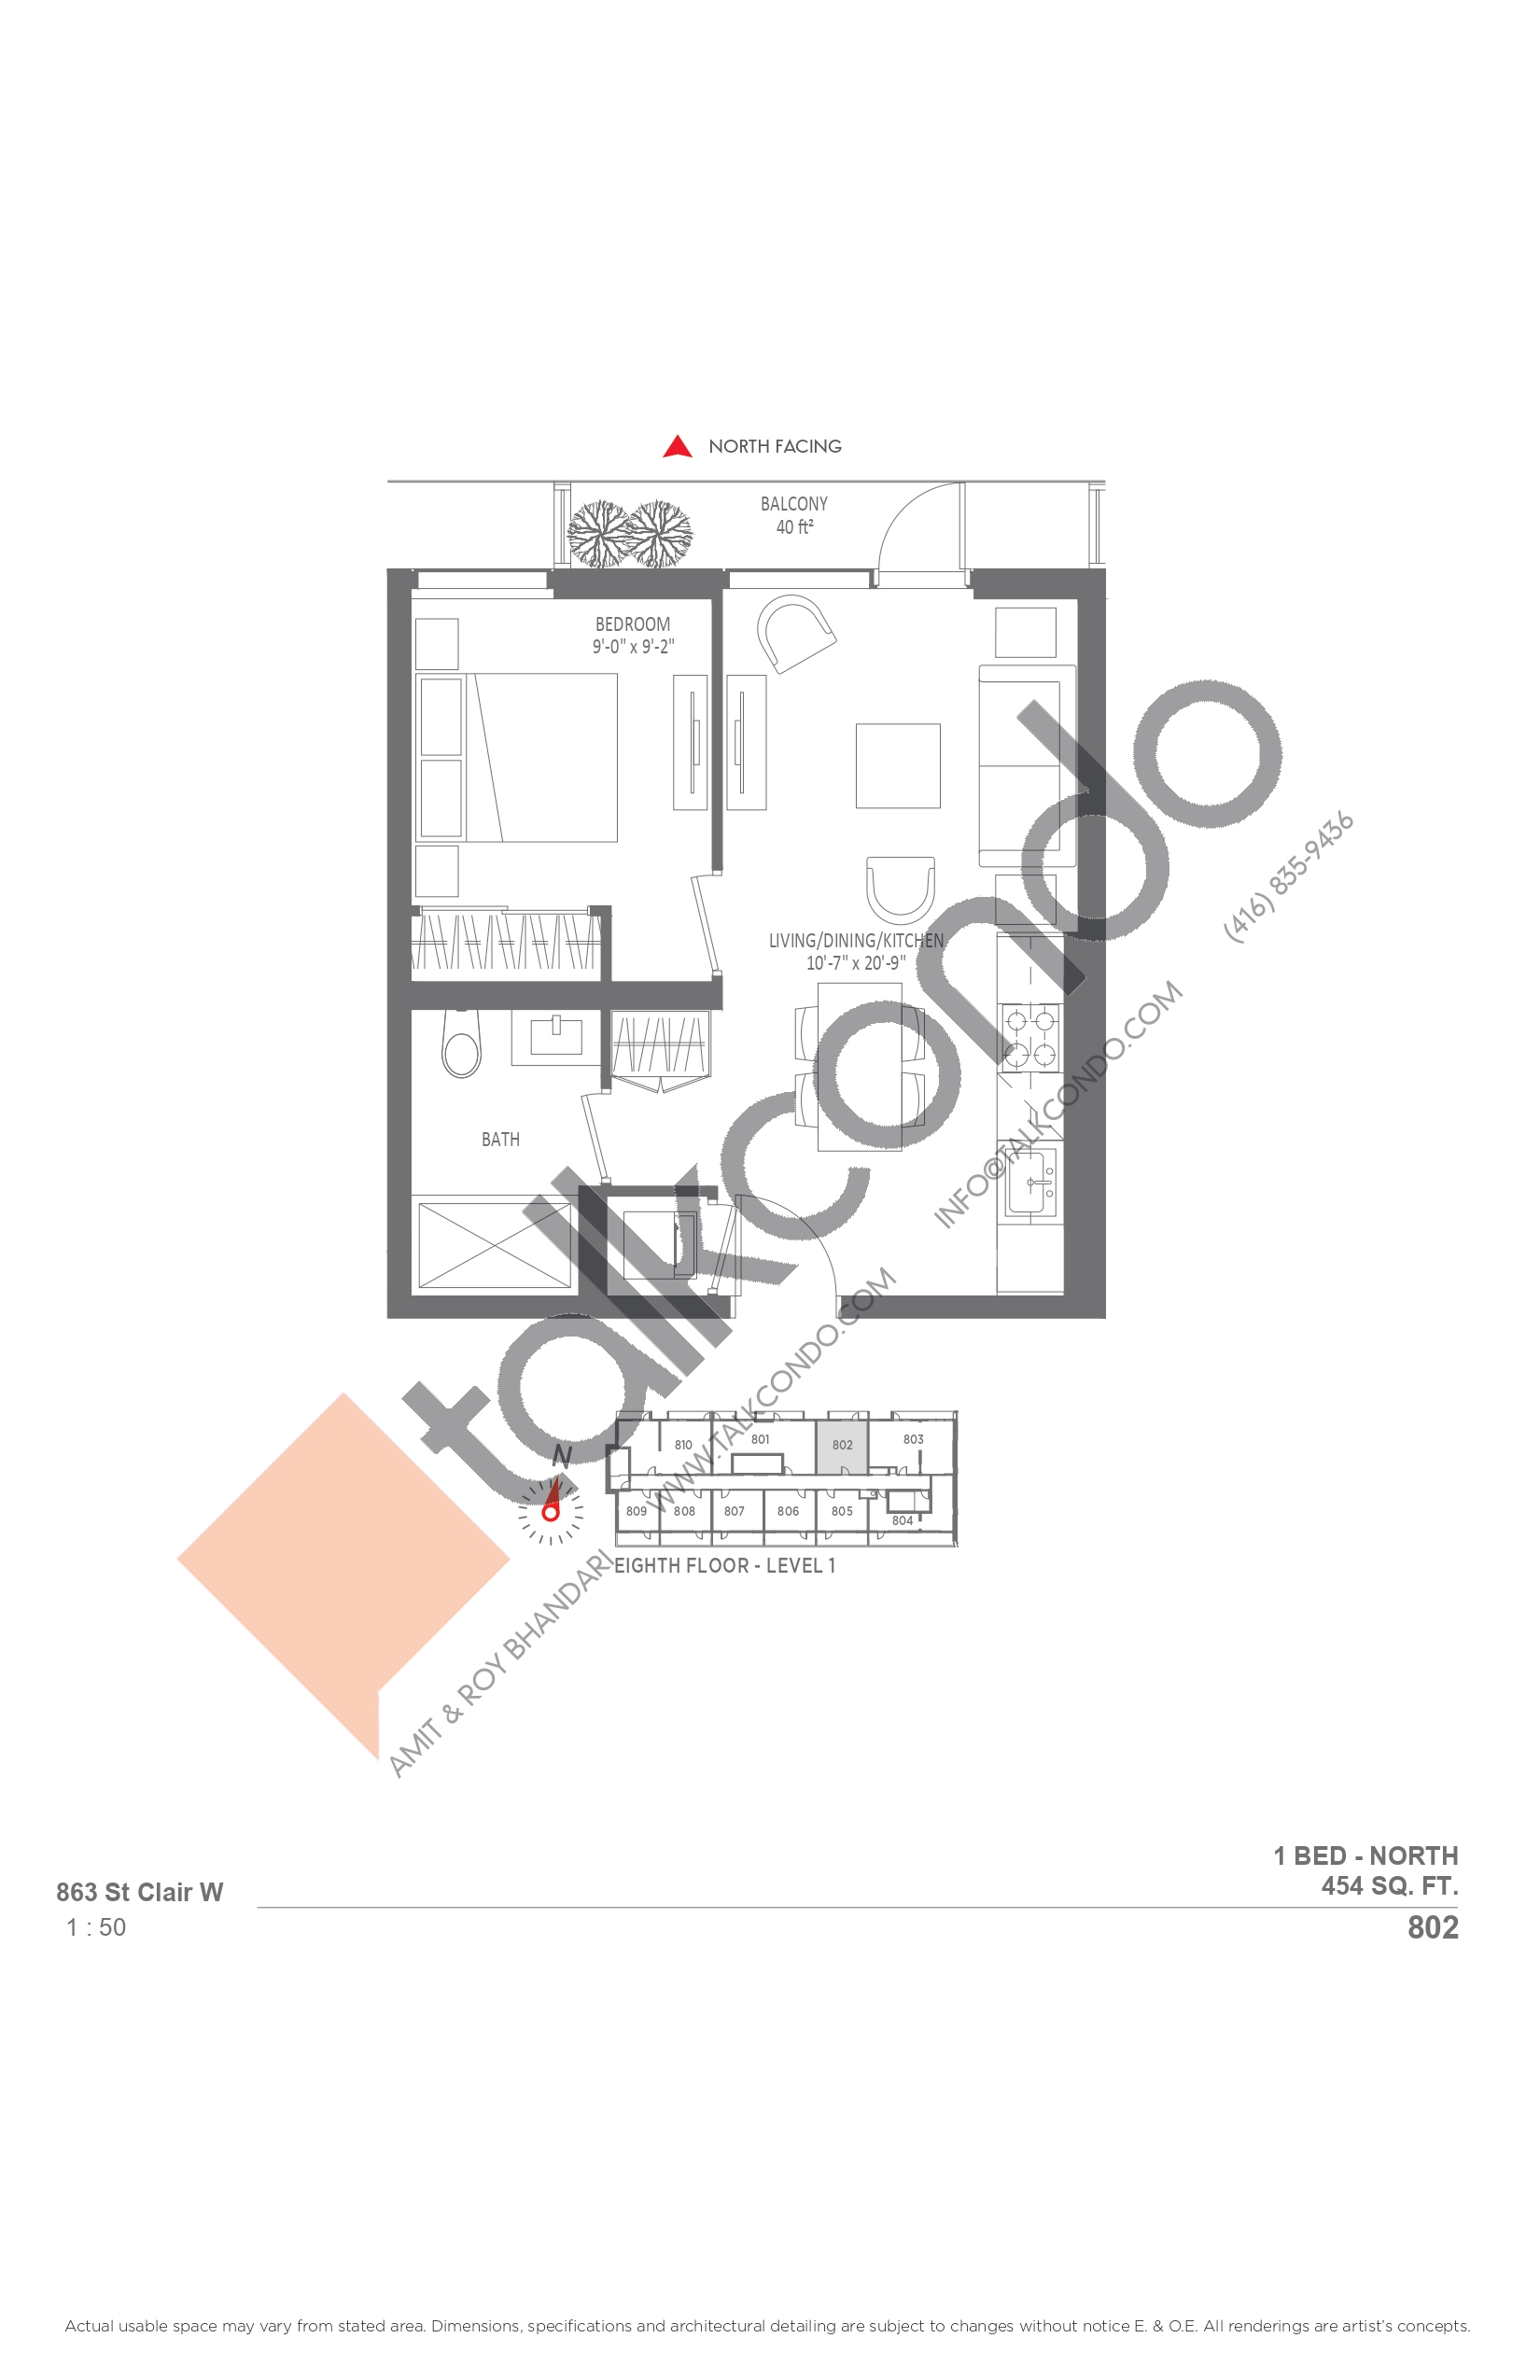 802 Floor Plan at Monza Condos - 454 sq.ft